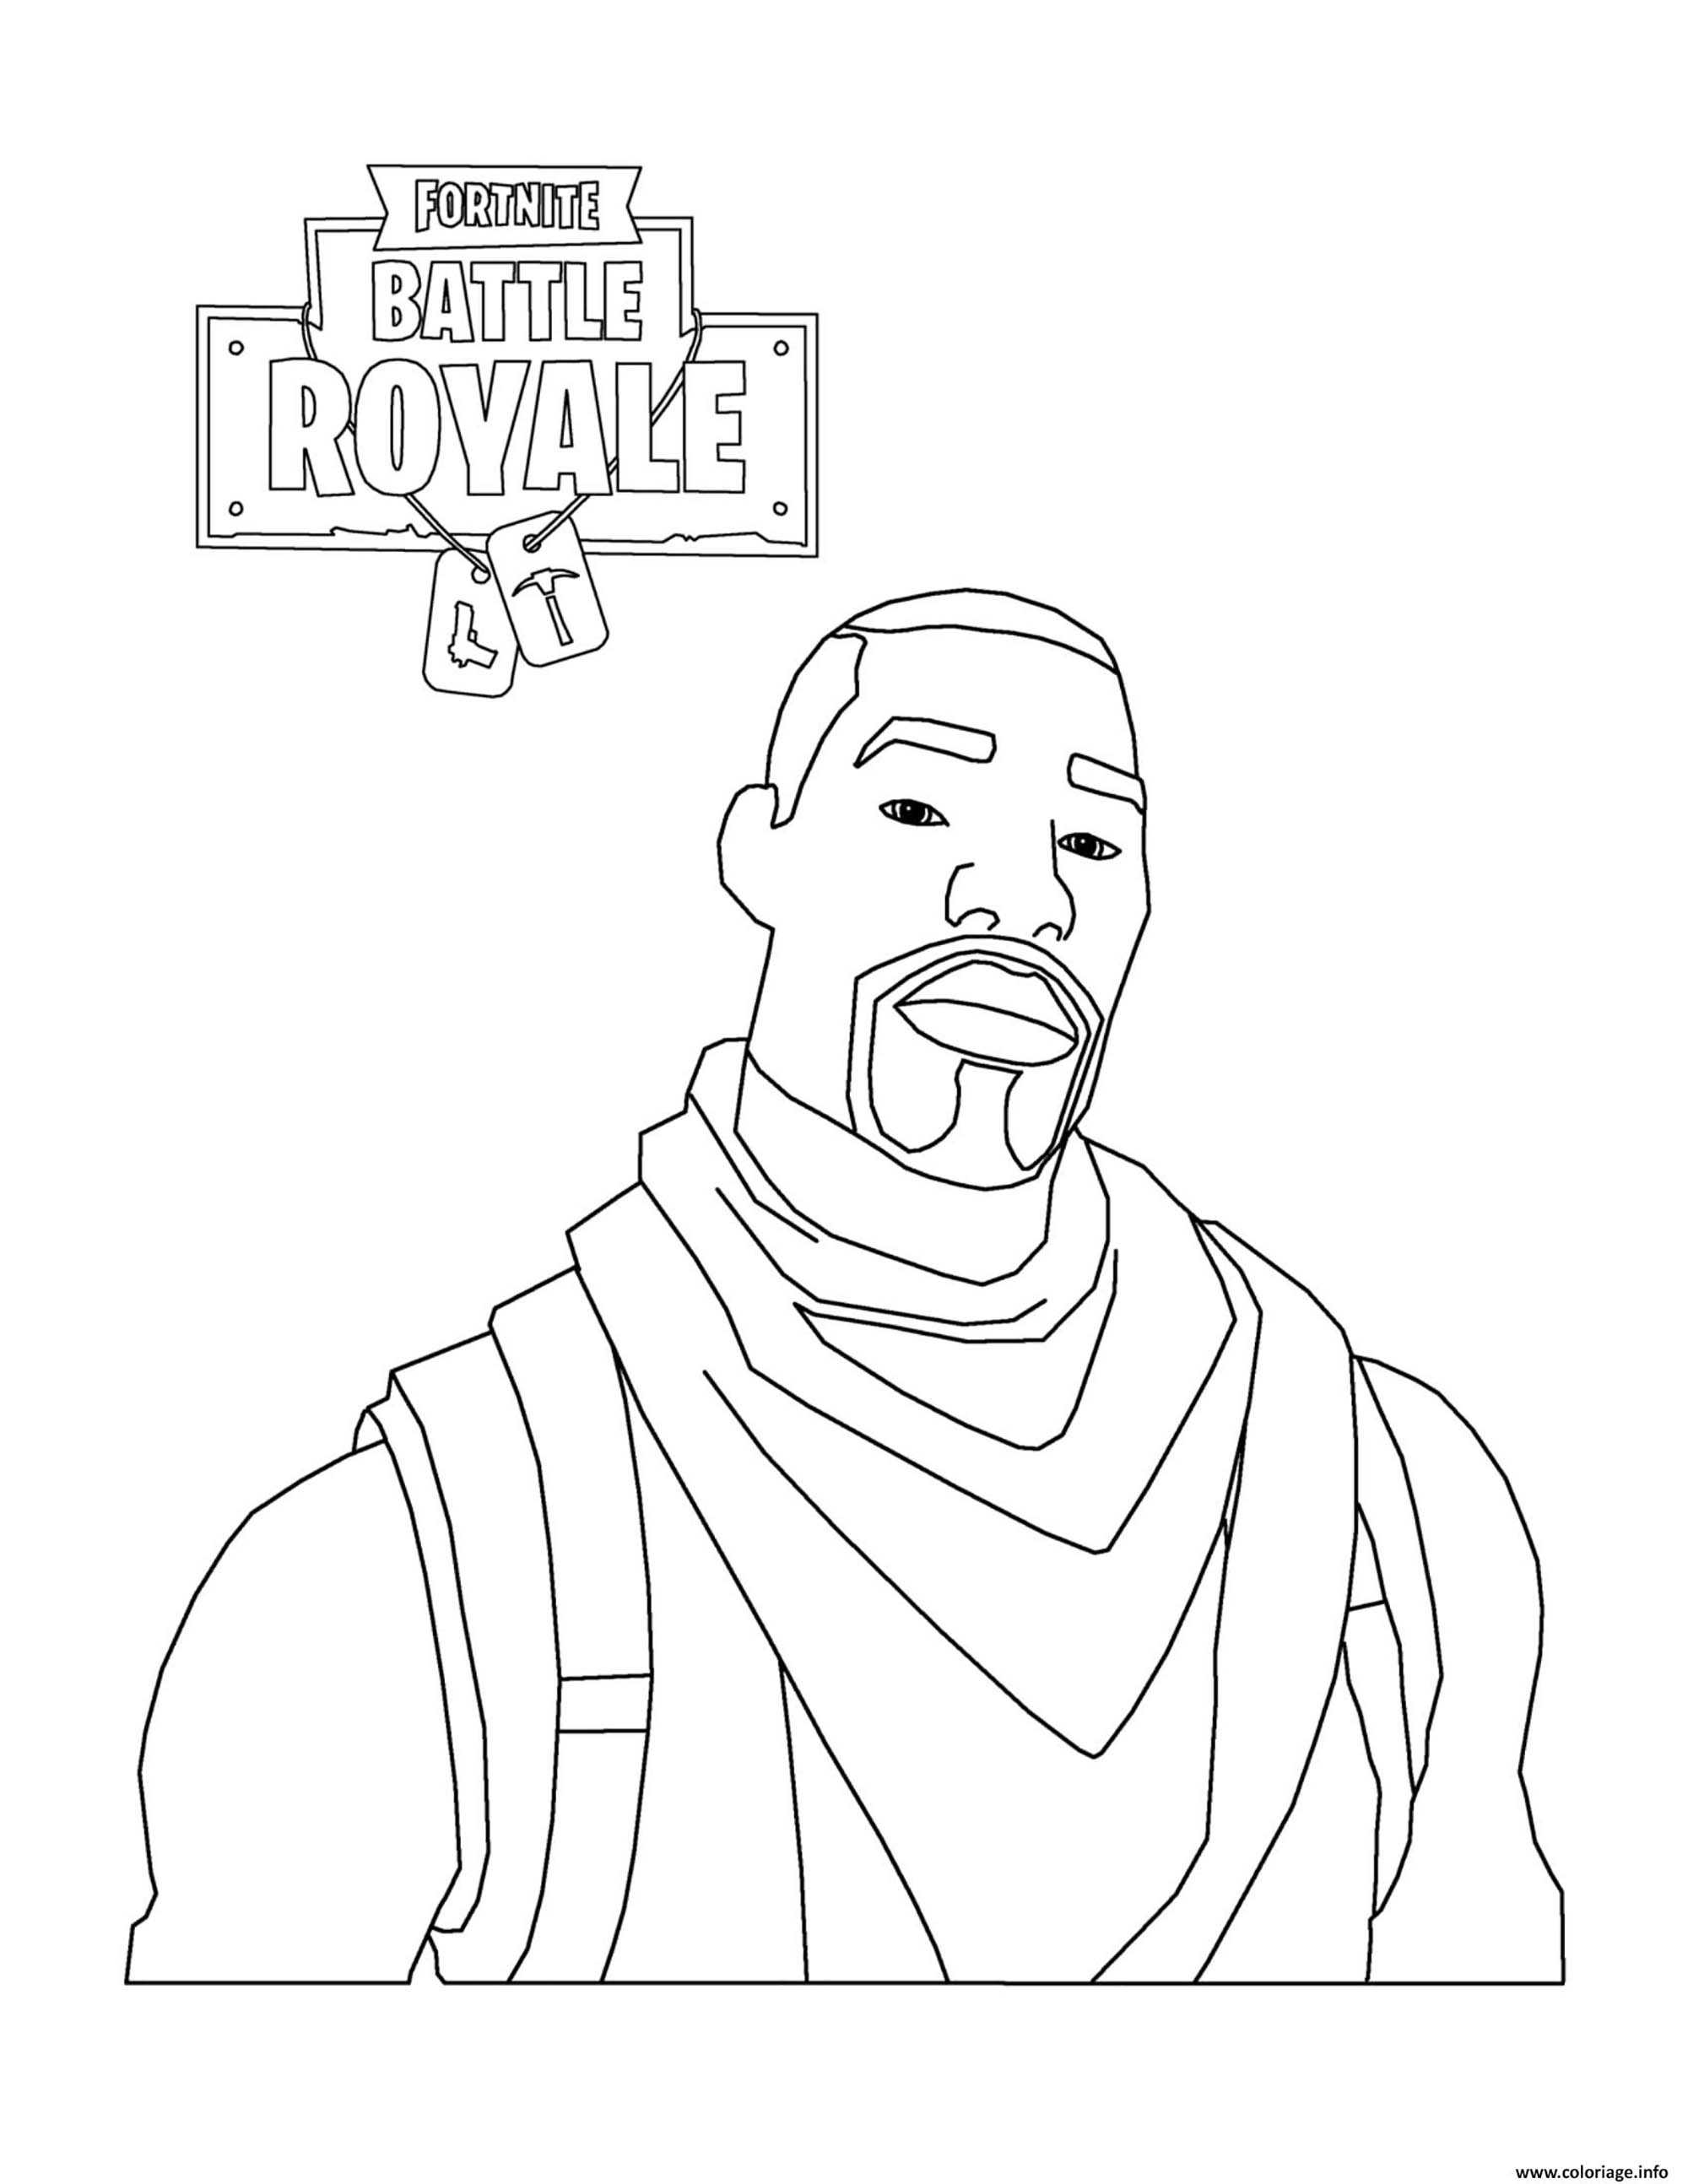 Fortnite Battle Royale Skin Gratuite Coloriage Fortnite Battle